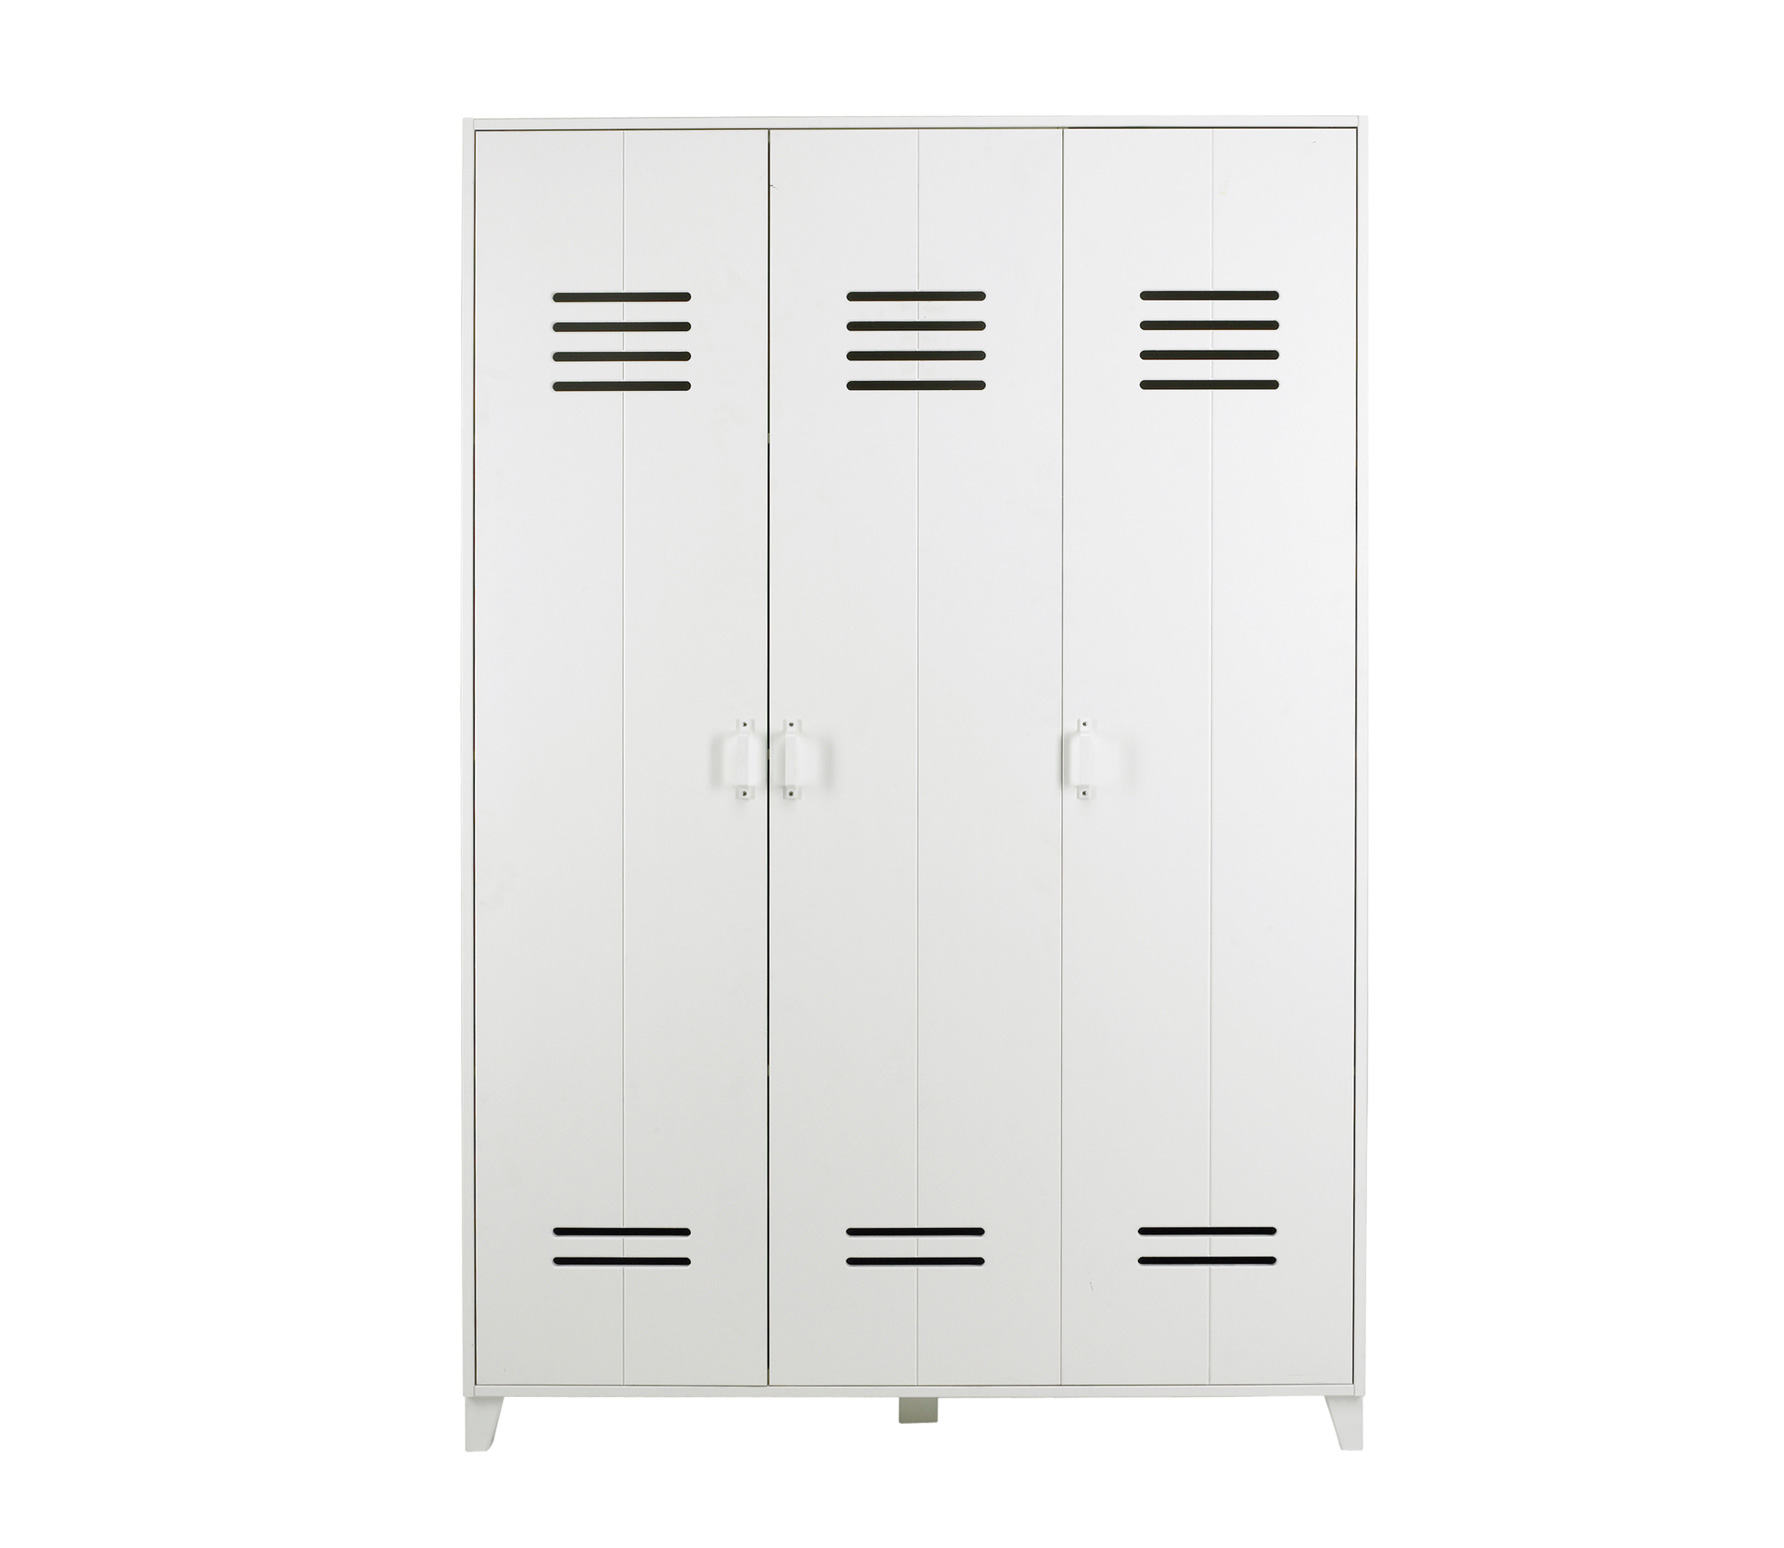 Ikea Ijzeren Kast Elegant Good Elegant Locker Wardrobe Brushed White Nest